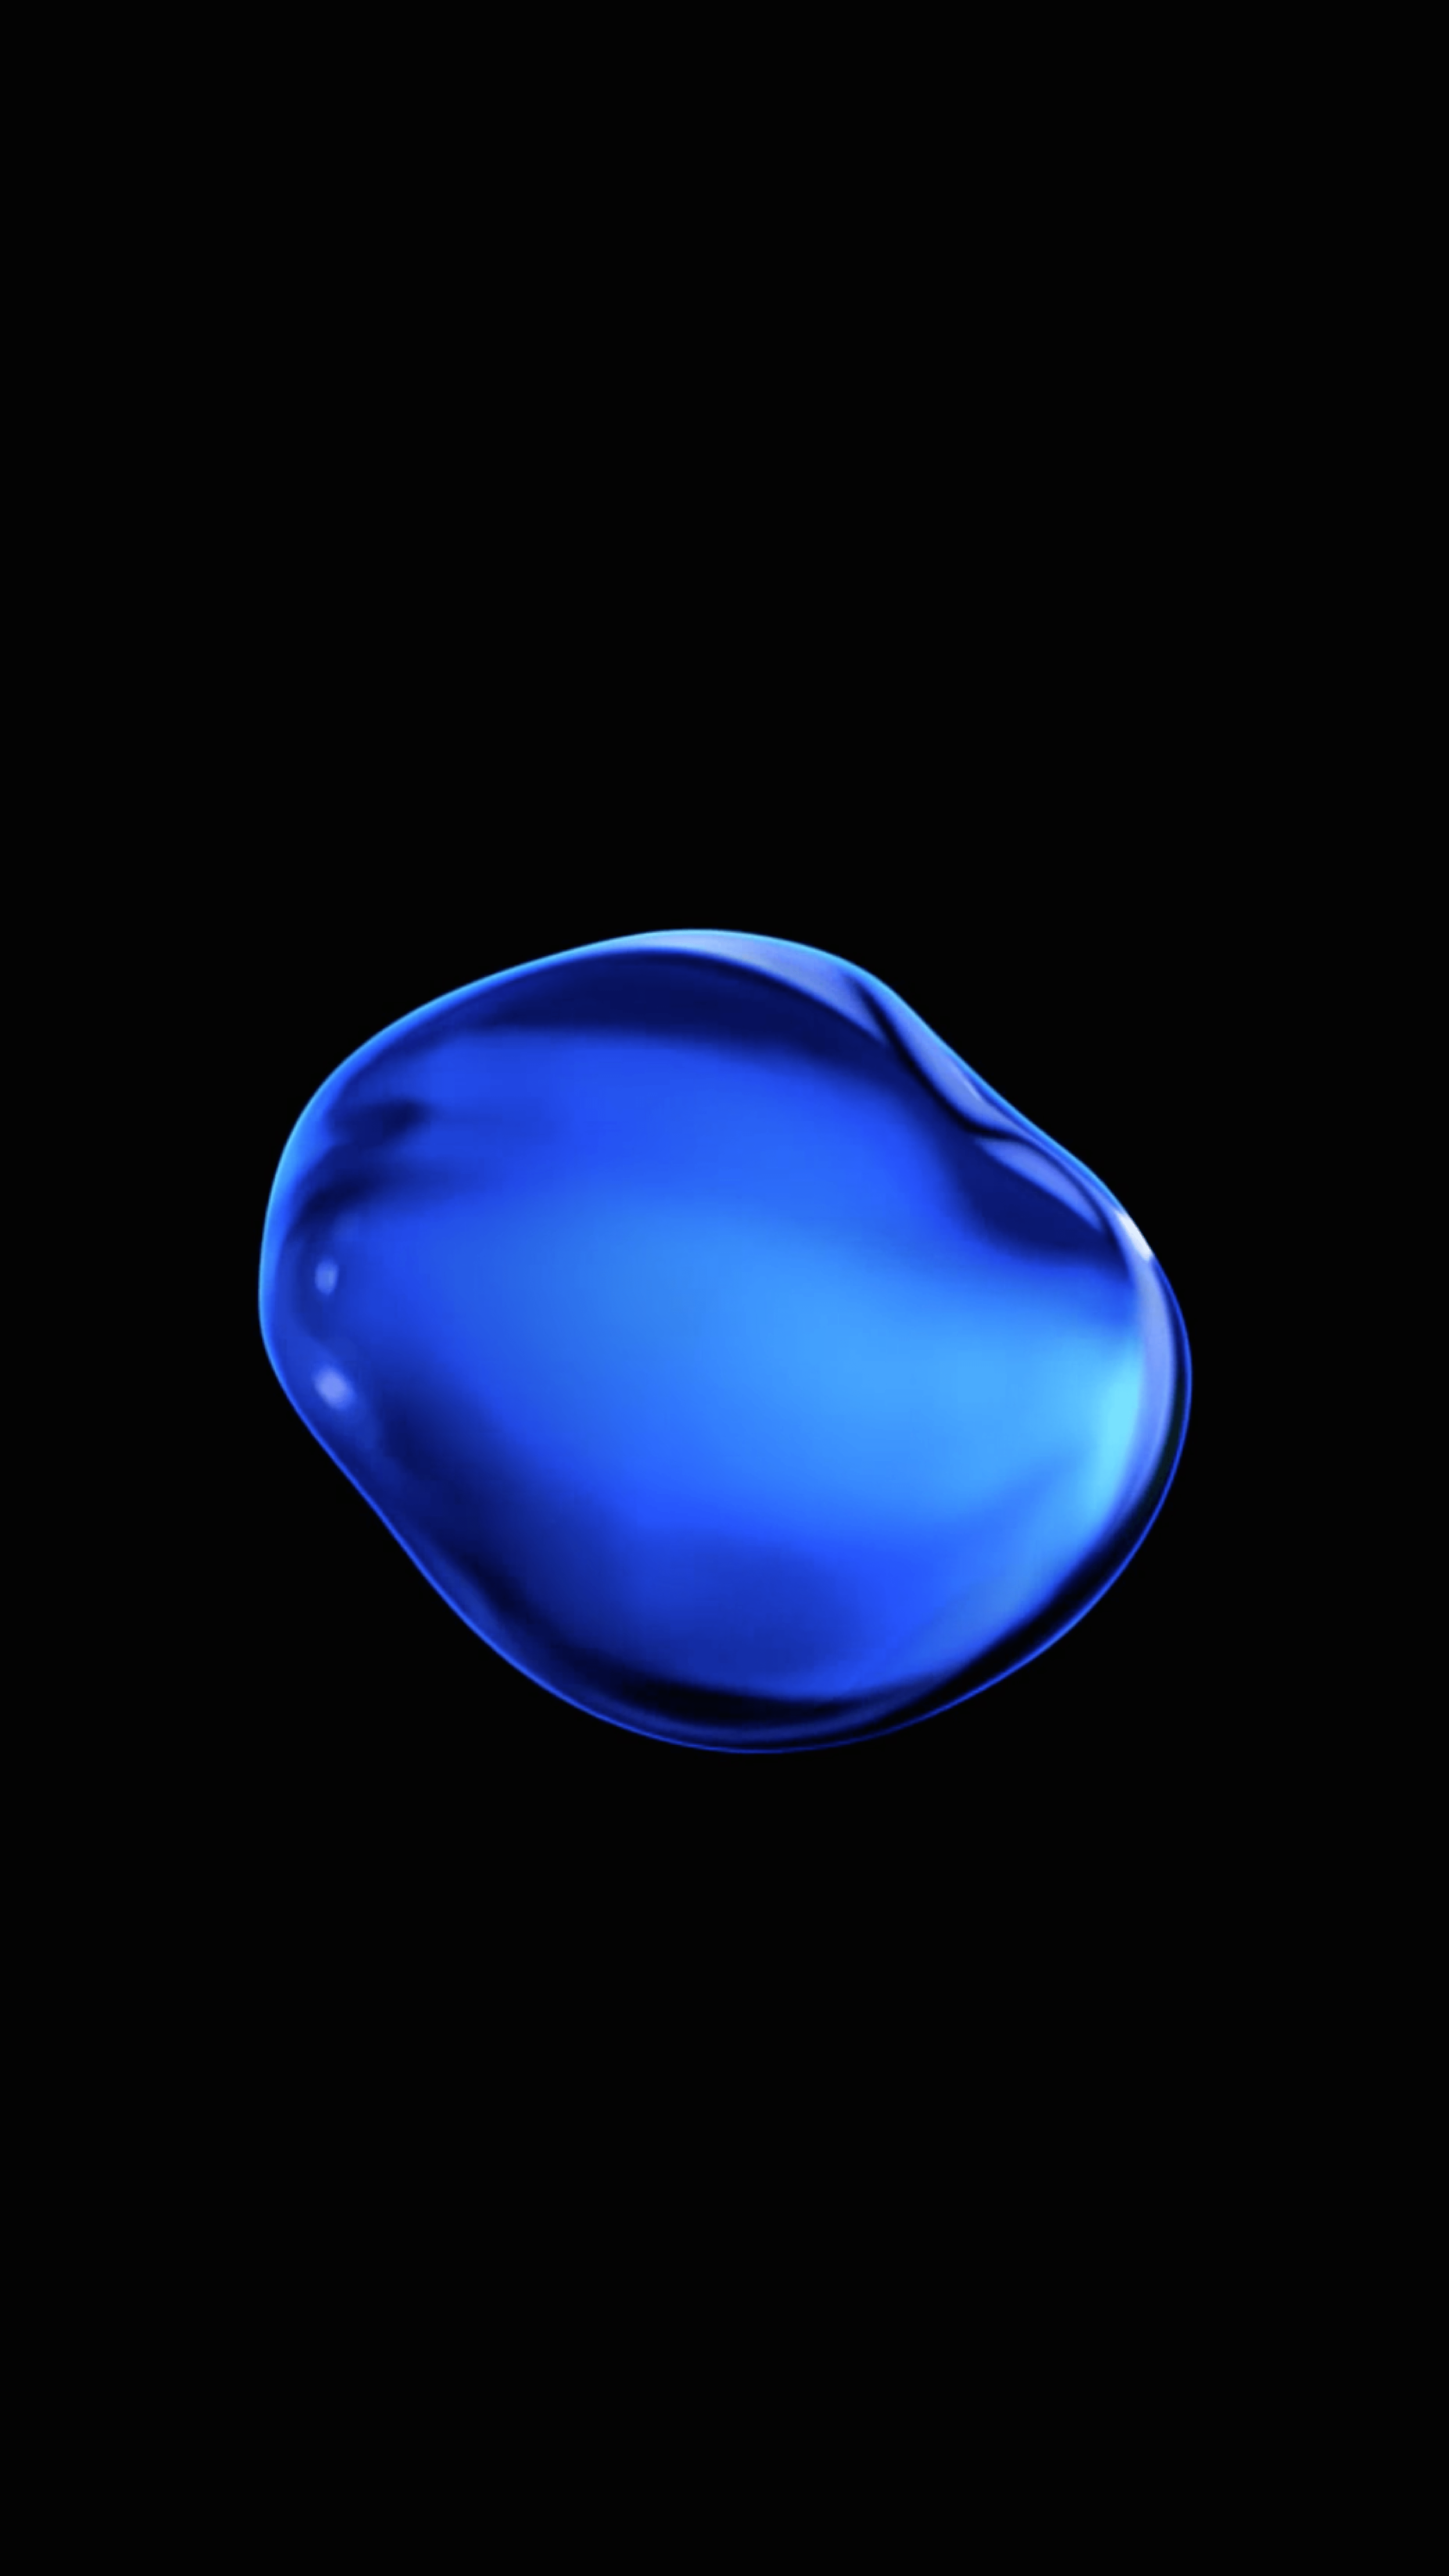 45 iPhone 7 Plus Live Wallpapers   Download at WallpaperBro 4500x8000